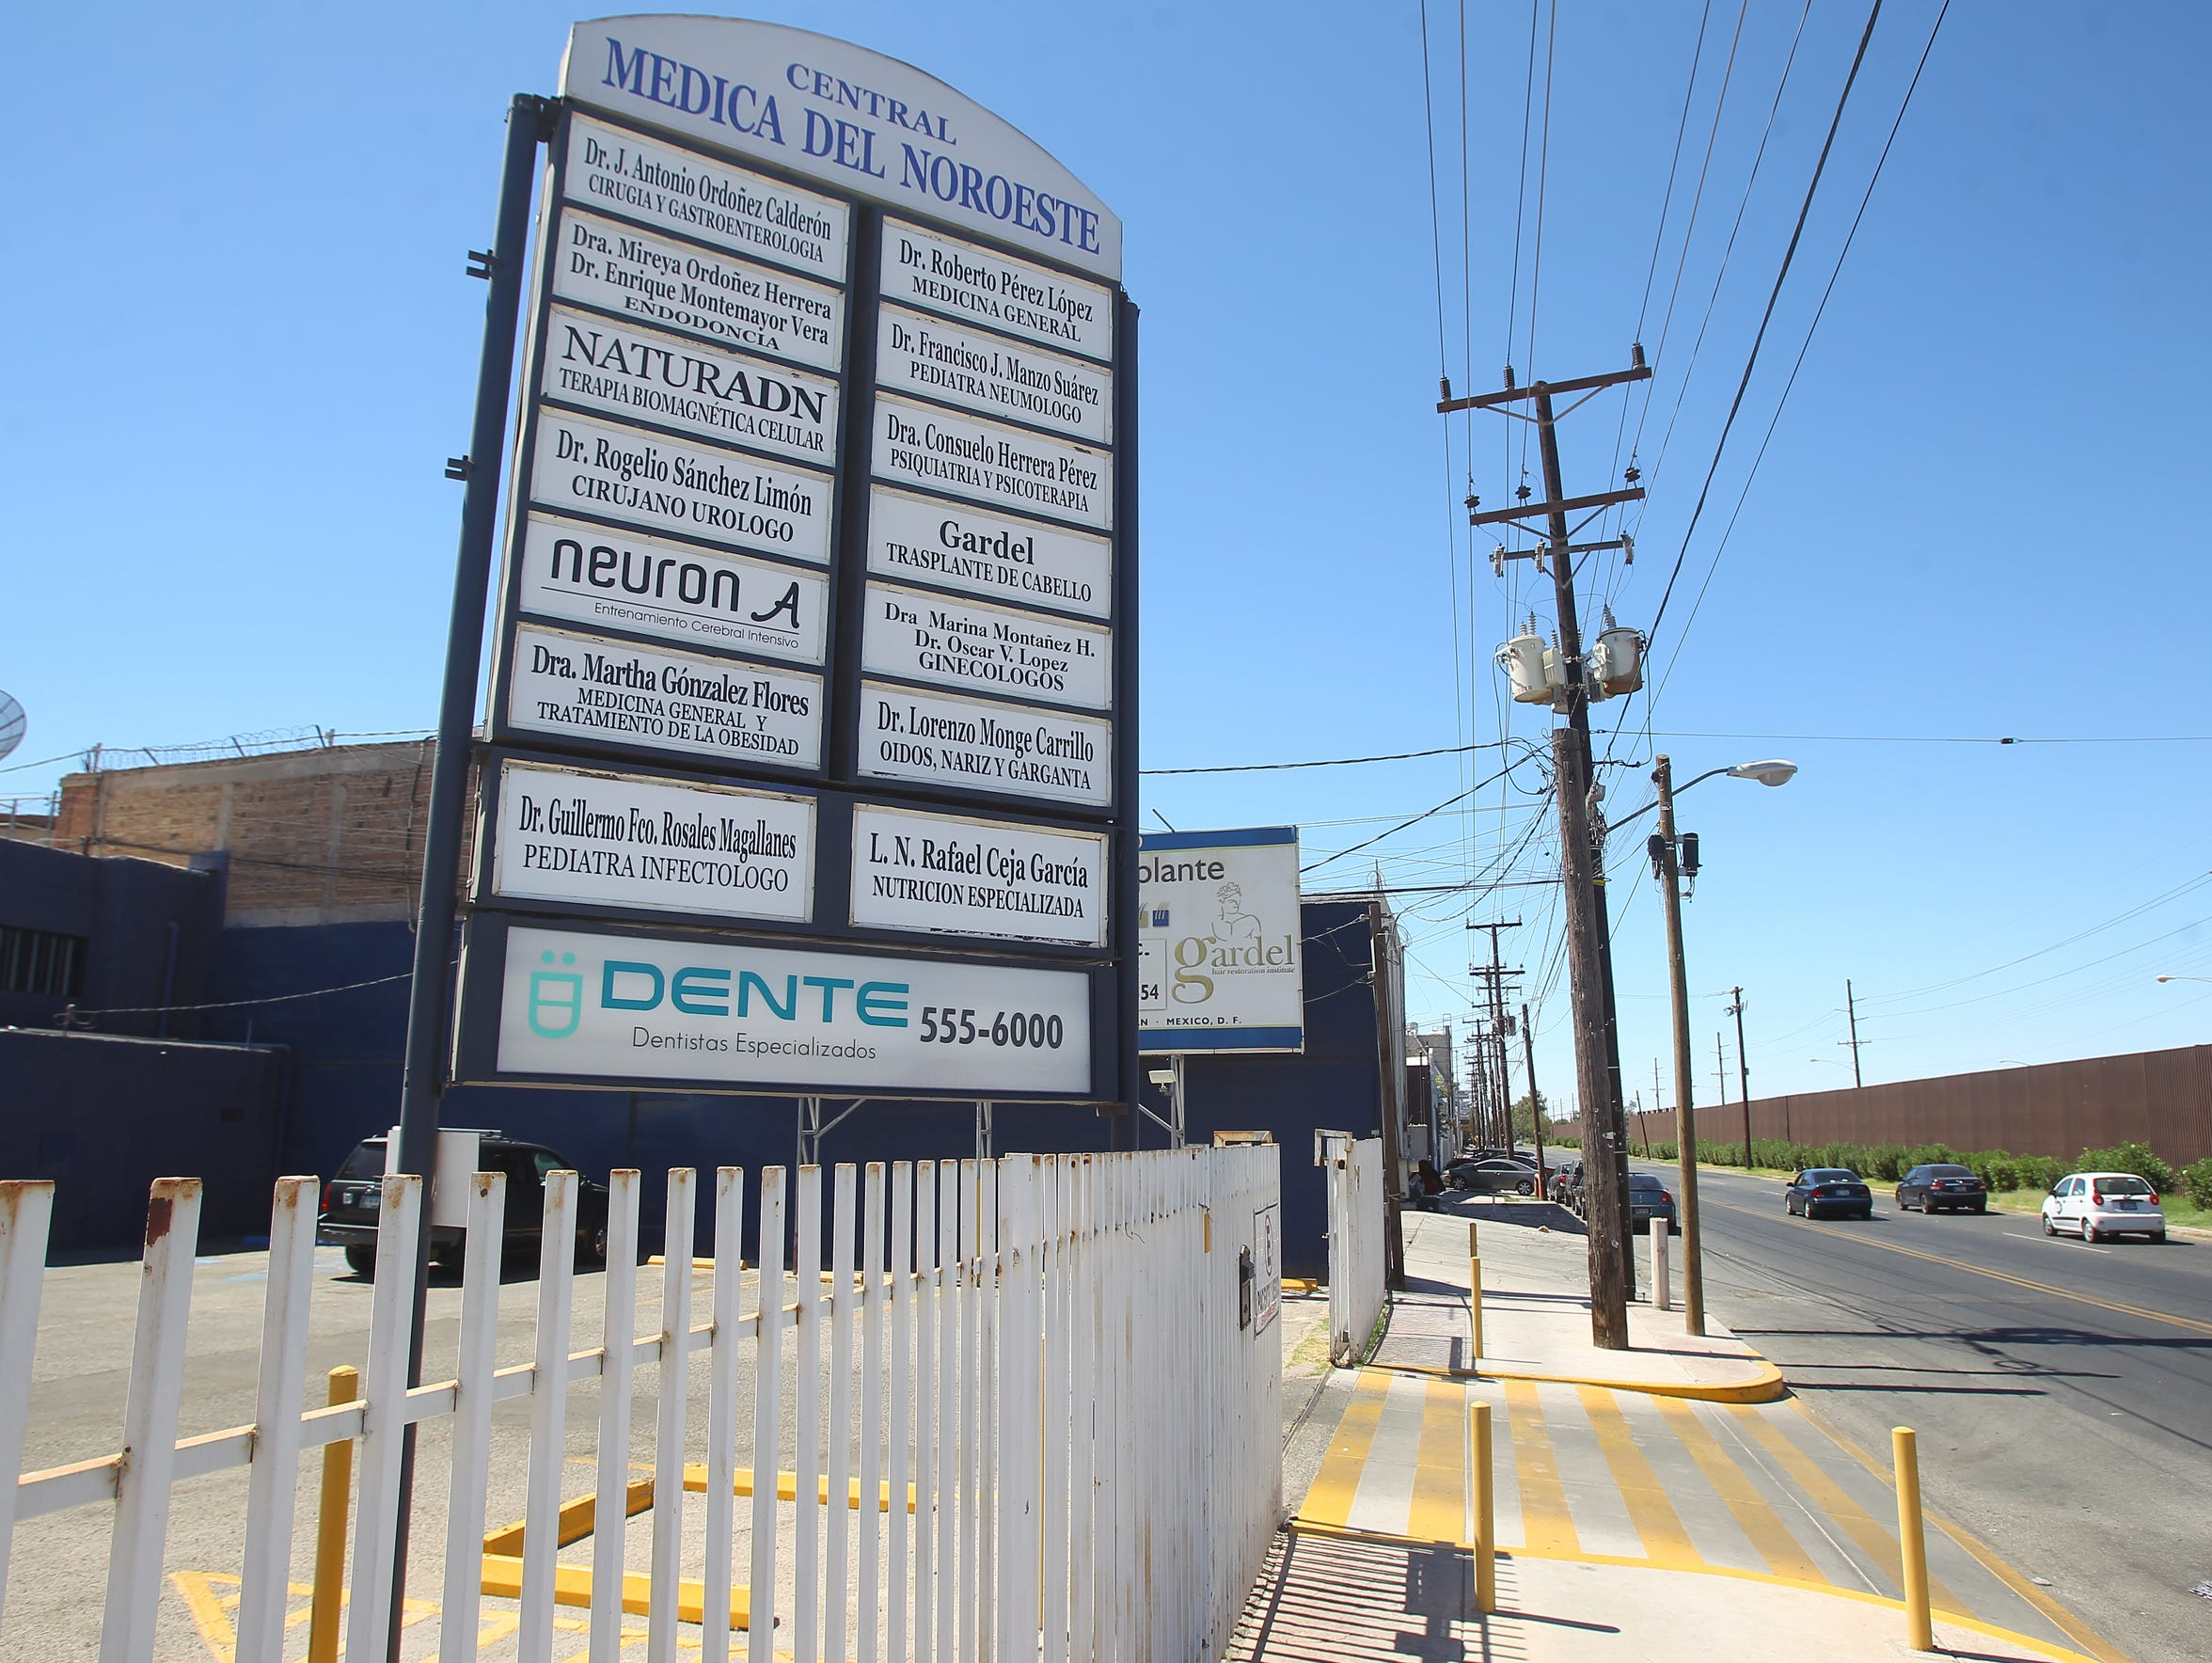 Many medical and dental clinics in Mexicali, Mexico